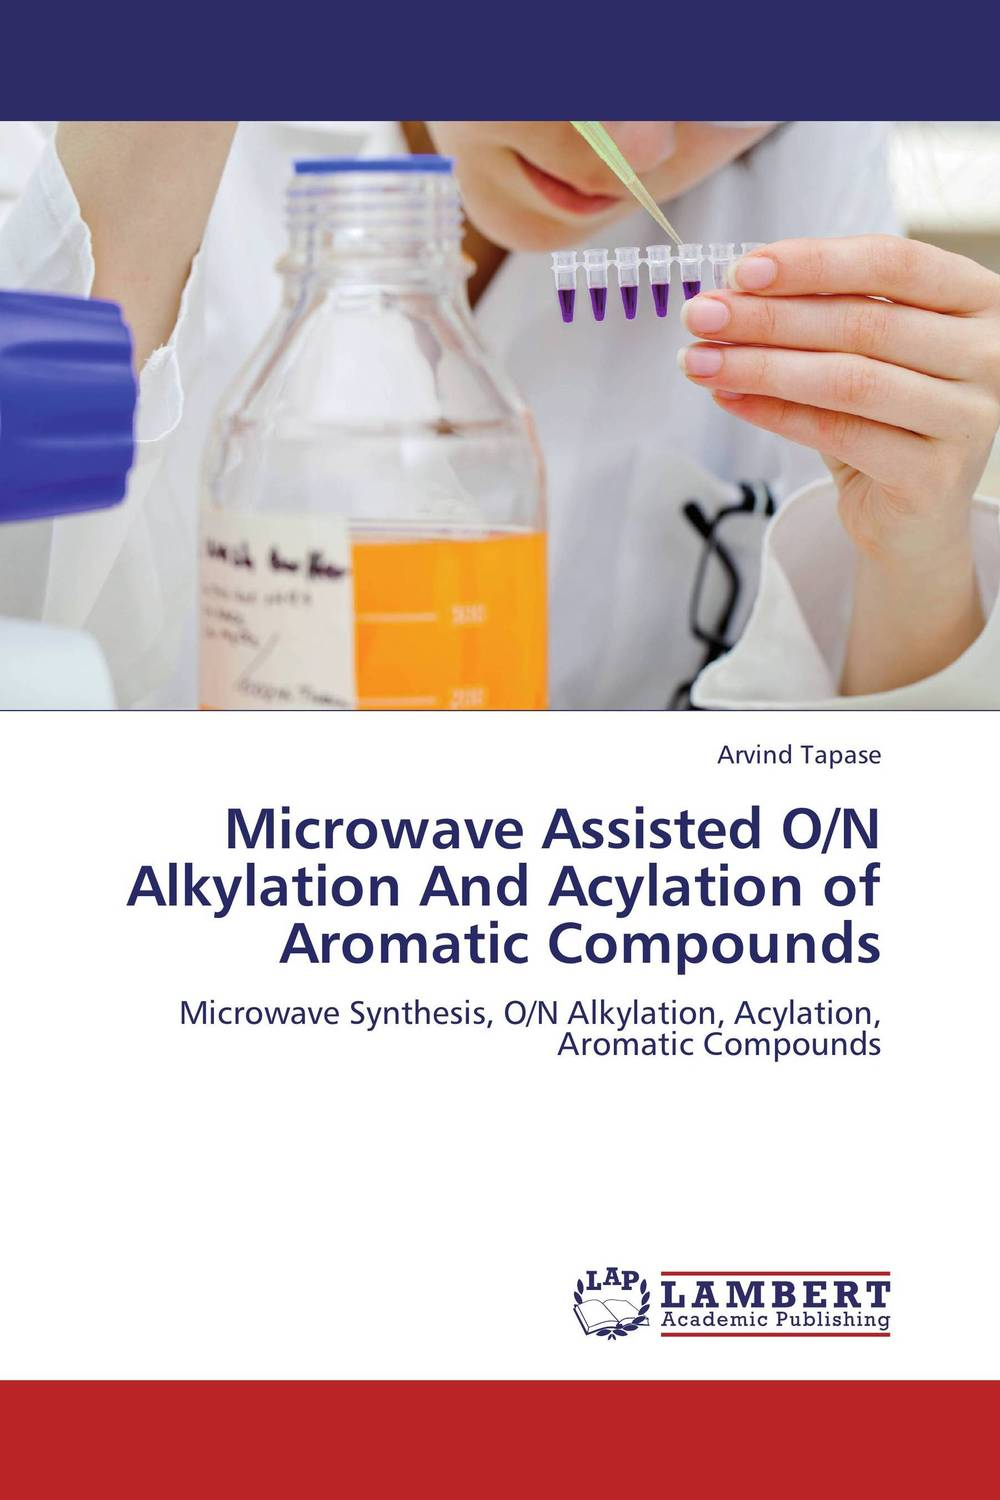 Microwave Assisted O/N Alkylation And Acylation of Aromatic Compounds